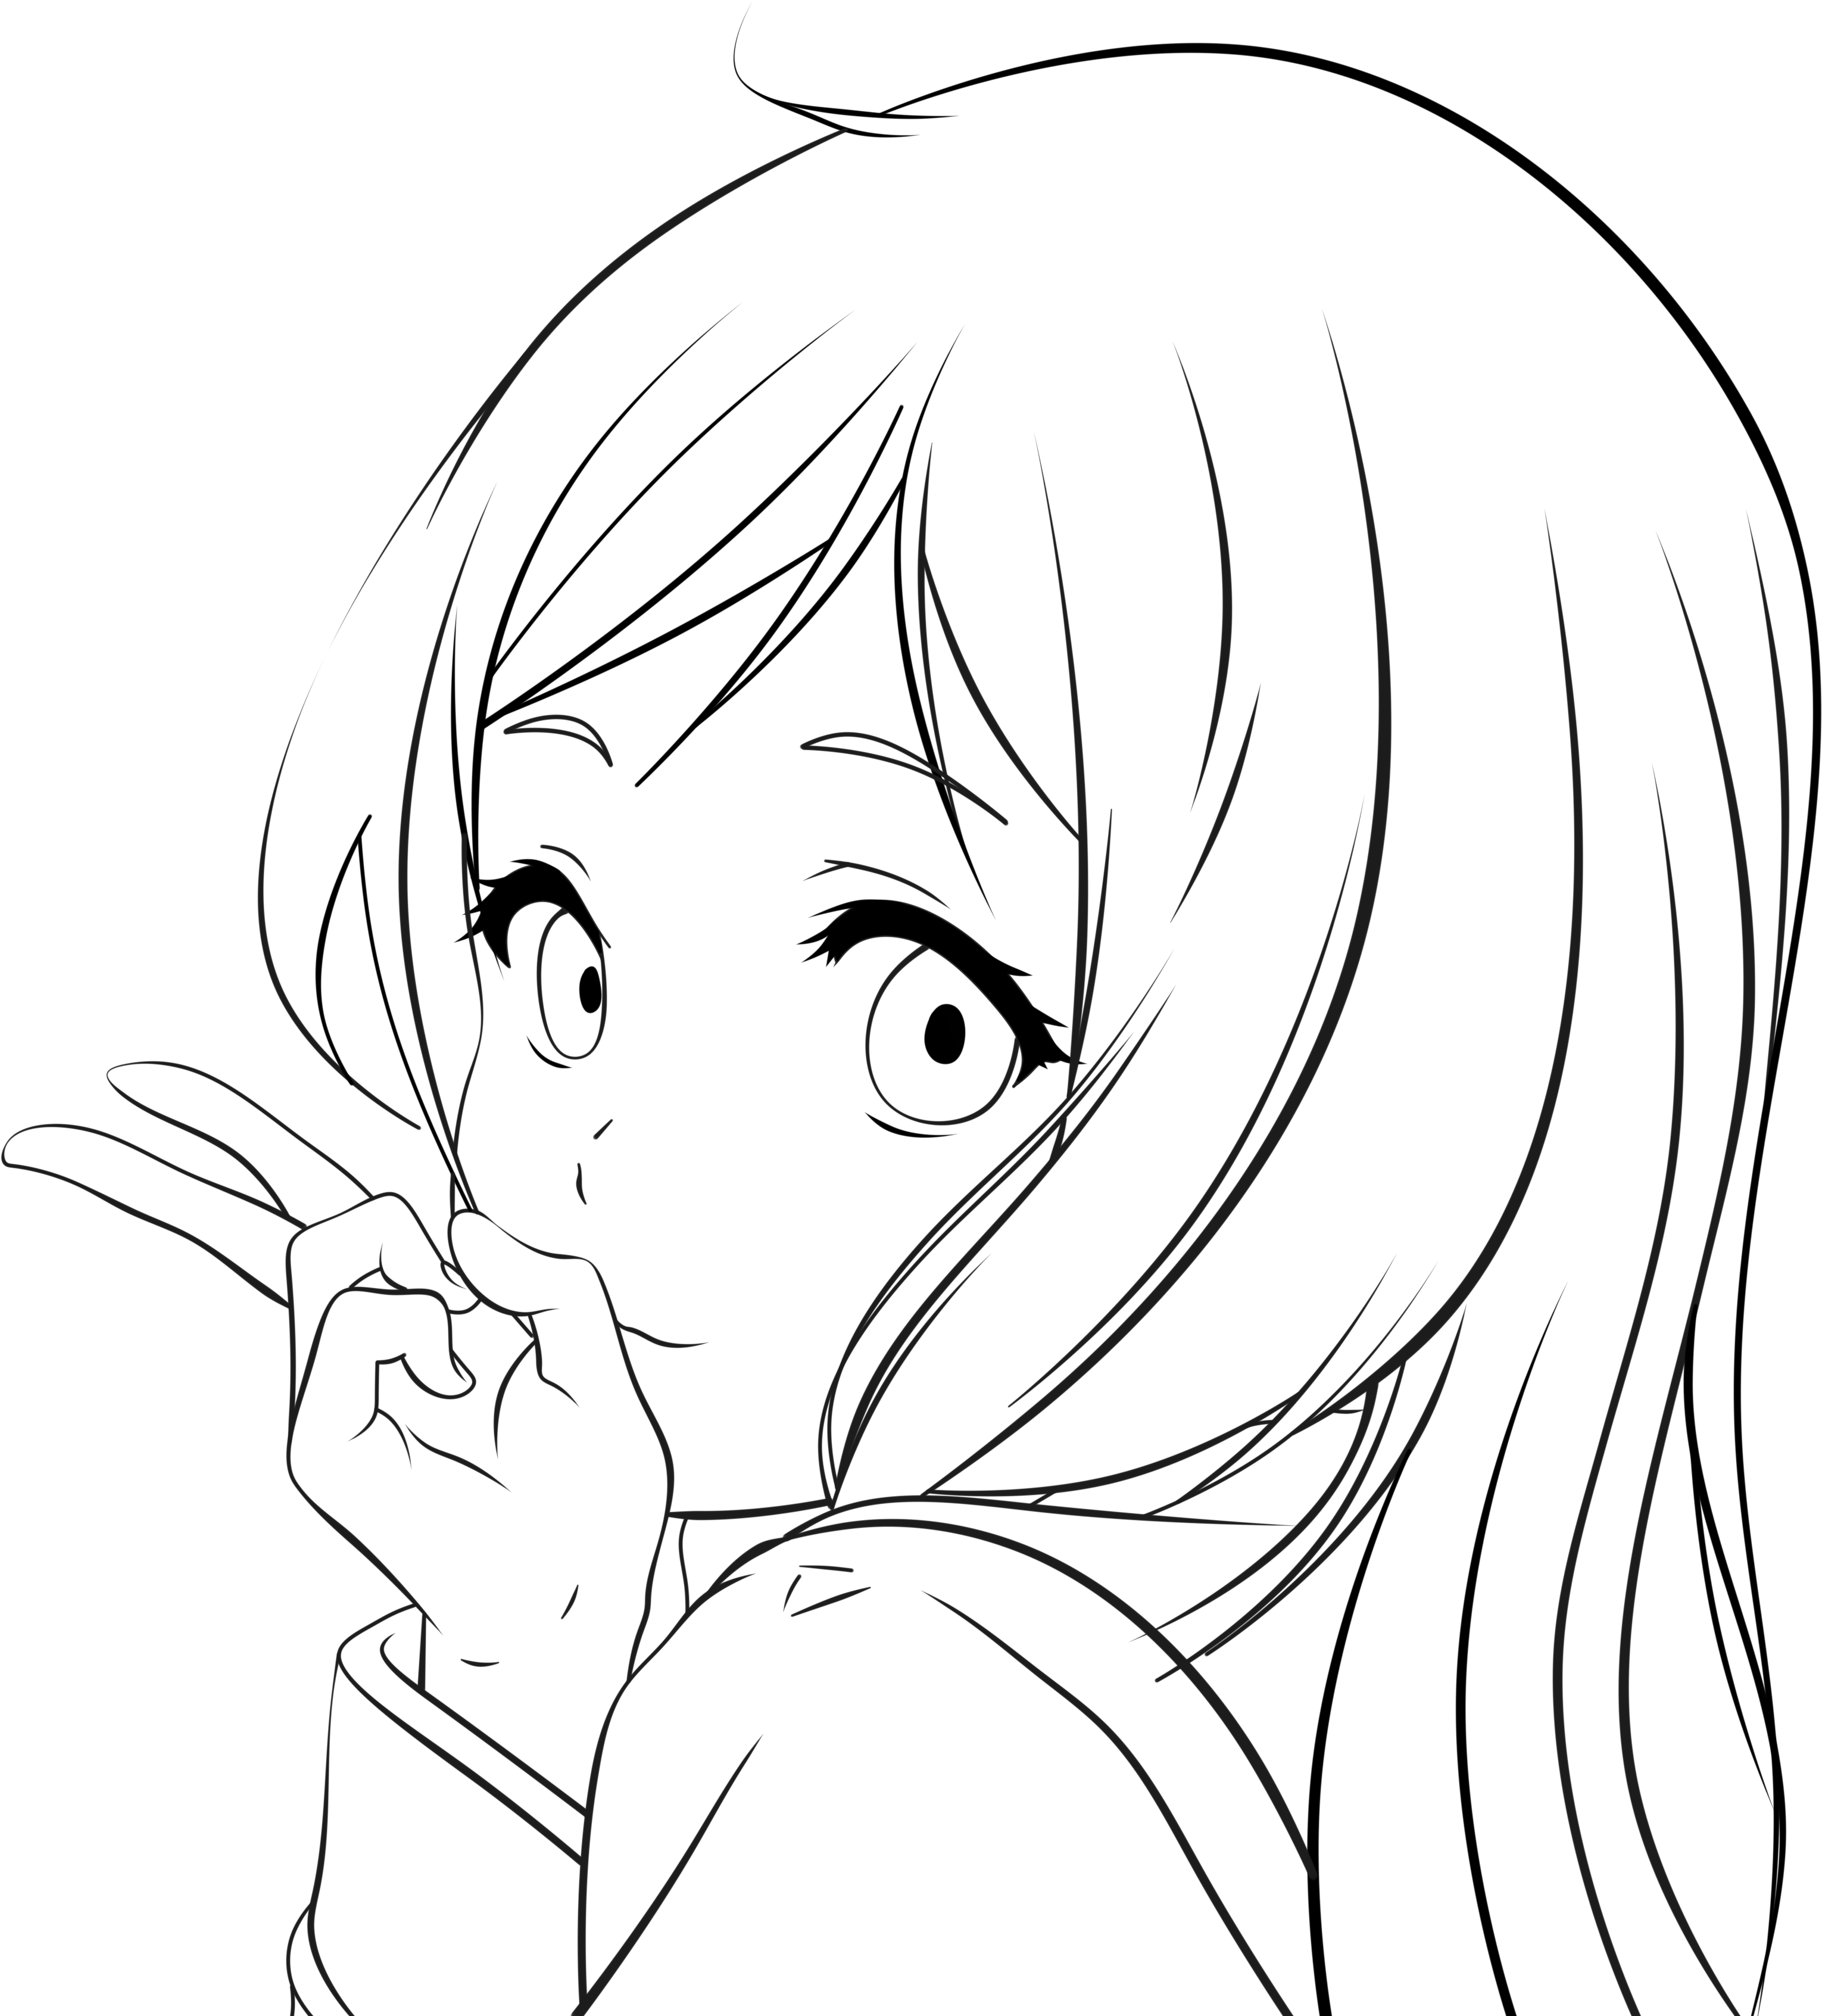 anime girl outline anime girl outline pictures to pin on pinterest pinsdaddy girl anime outline